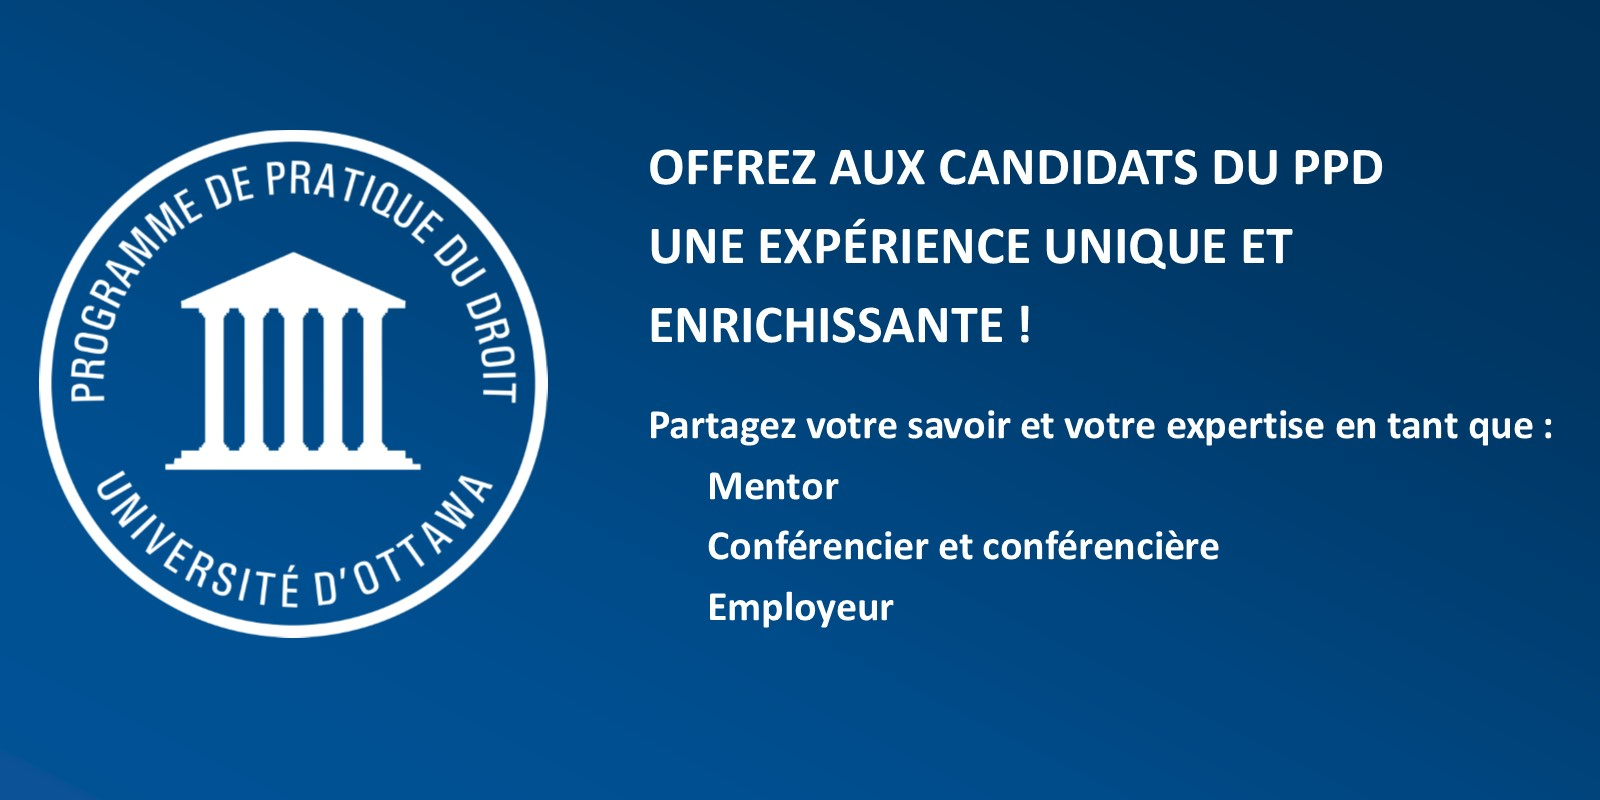 Get involve with the Programme de pratique du droit and offer the candidates a unique and rewarding experience. Get involve as a mentor, a speaker or an employer.